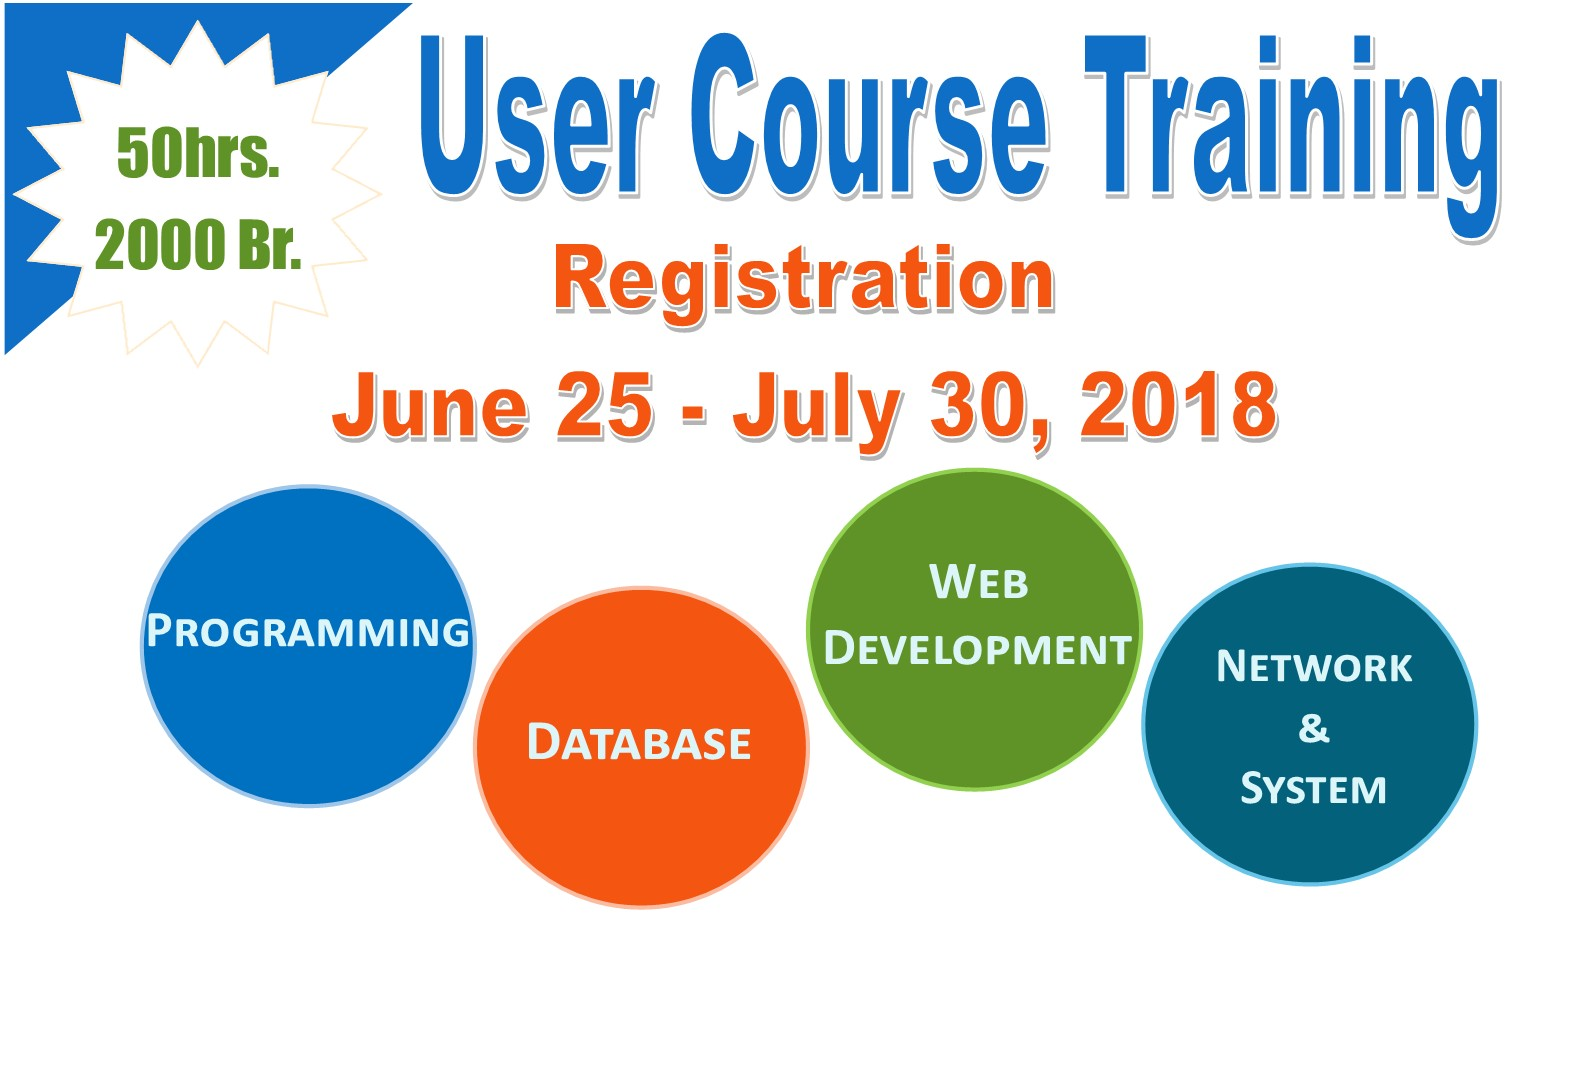 User Course Training